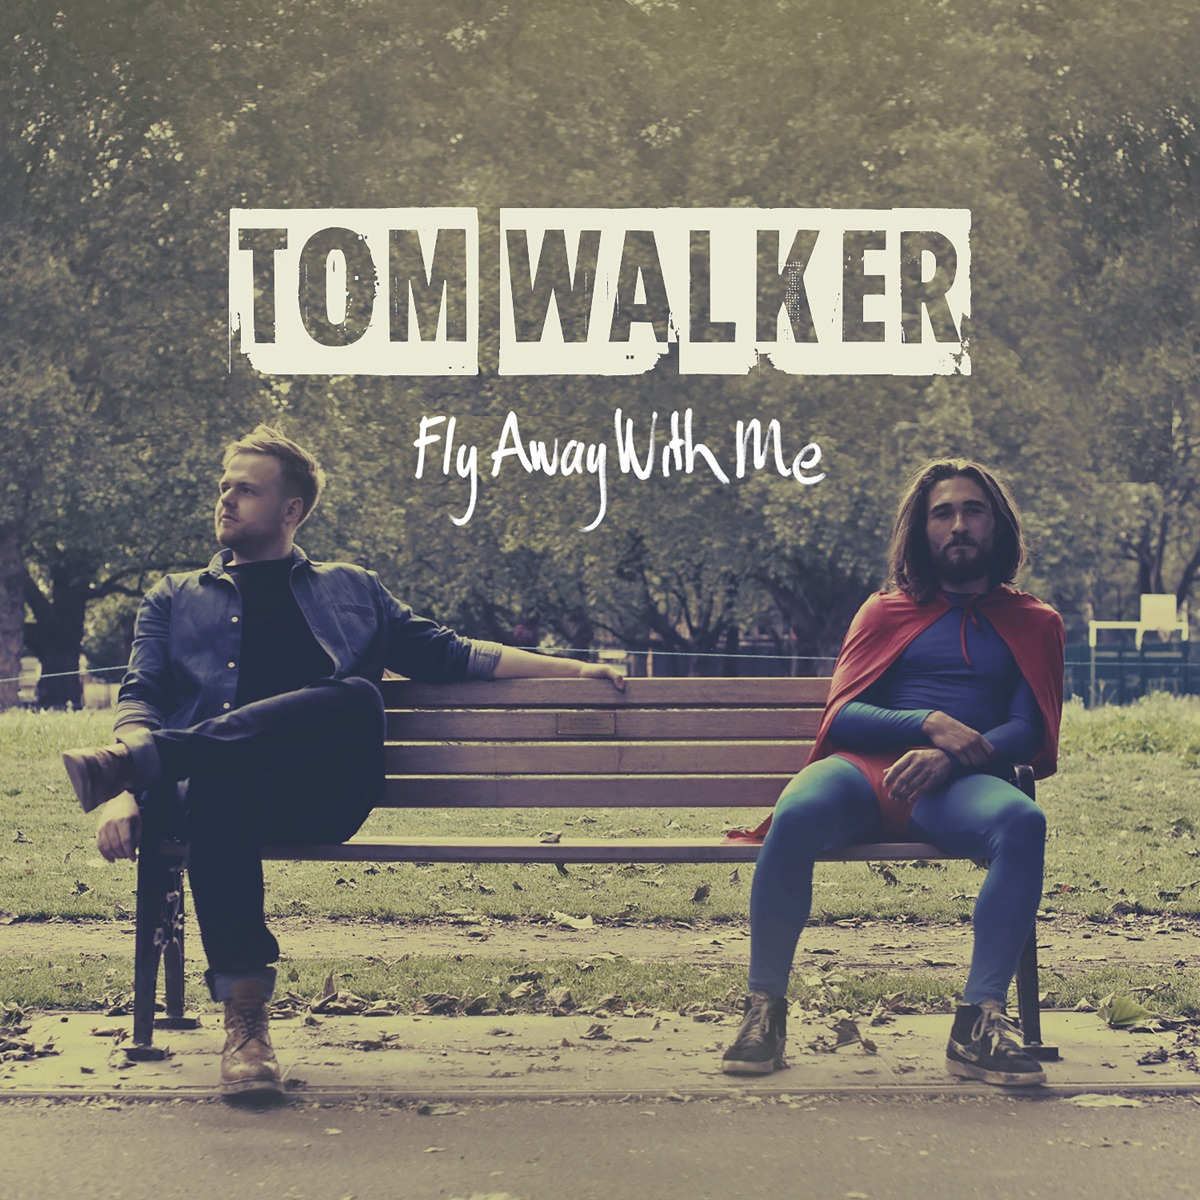 Fly Away with Me - Single Album Cover by Tom Walker